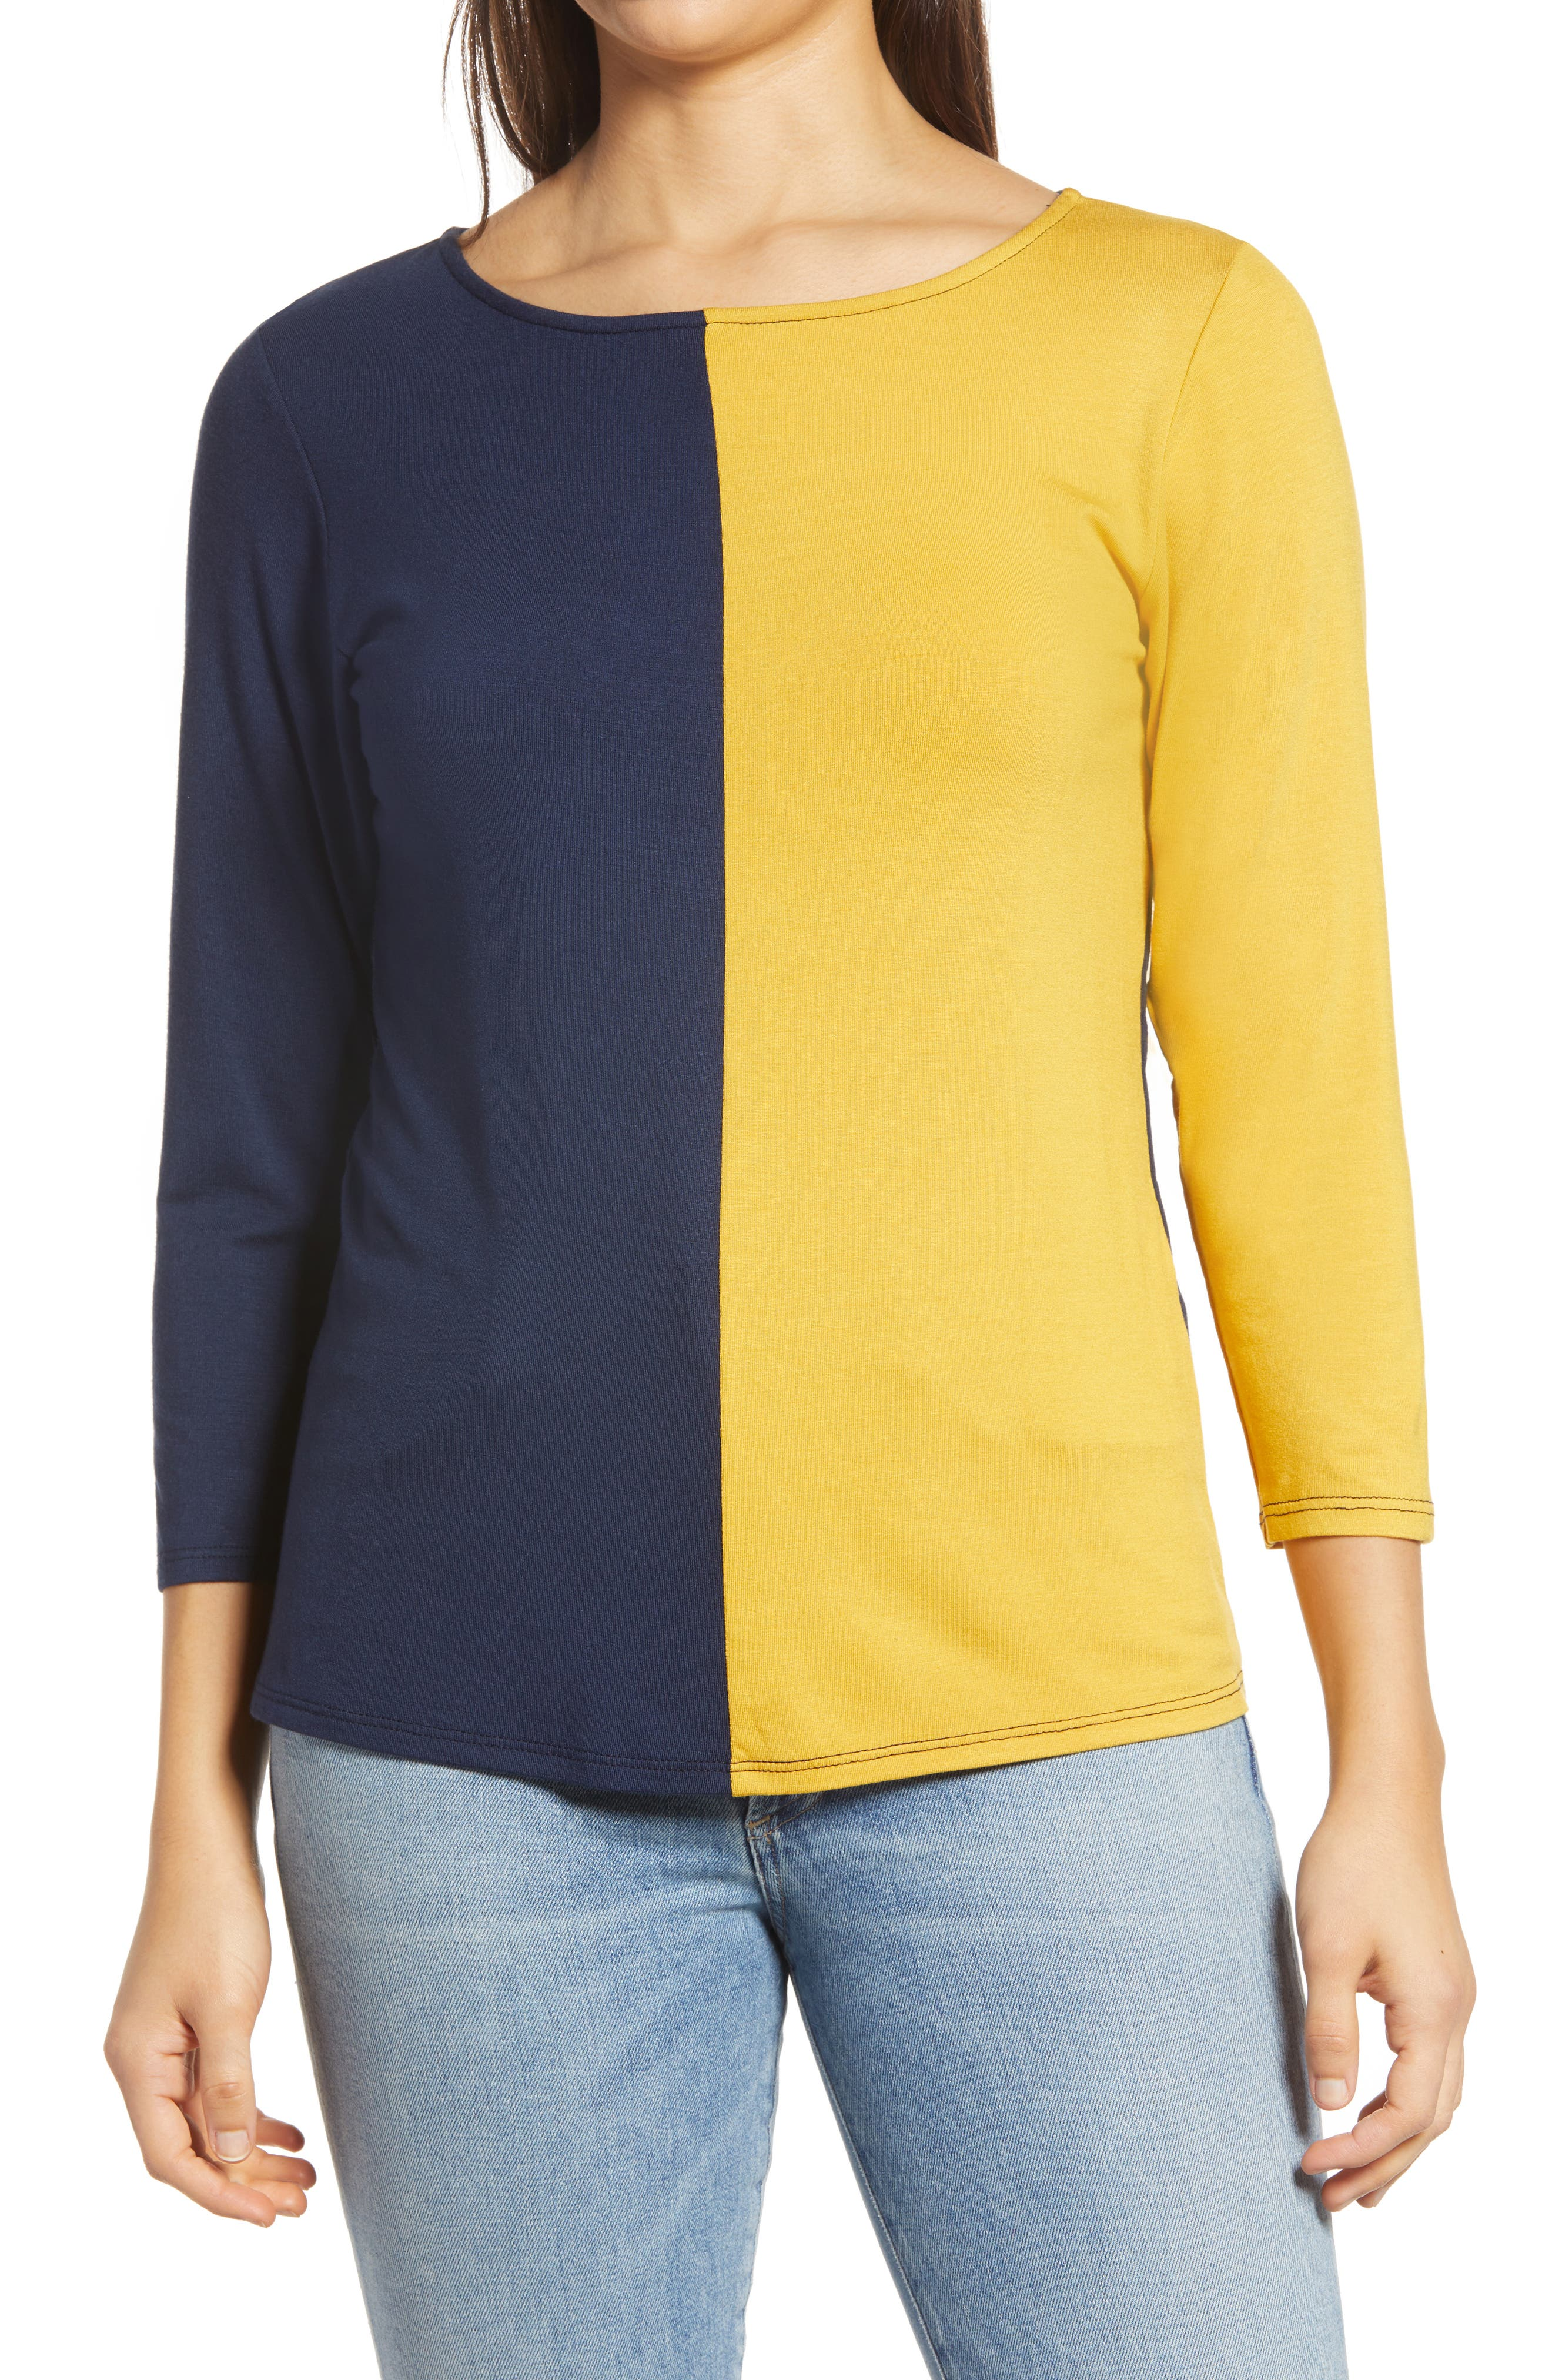 Blocks of contrasting jersey make a bold impression on this easy-fit top that skims the figure and ends in graceful three-quarter sleeves. Style Name: Loveappella Colorblock Top. Style Number: 6134080. Available in stores.